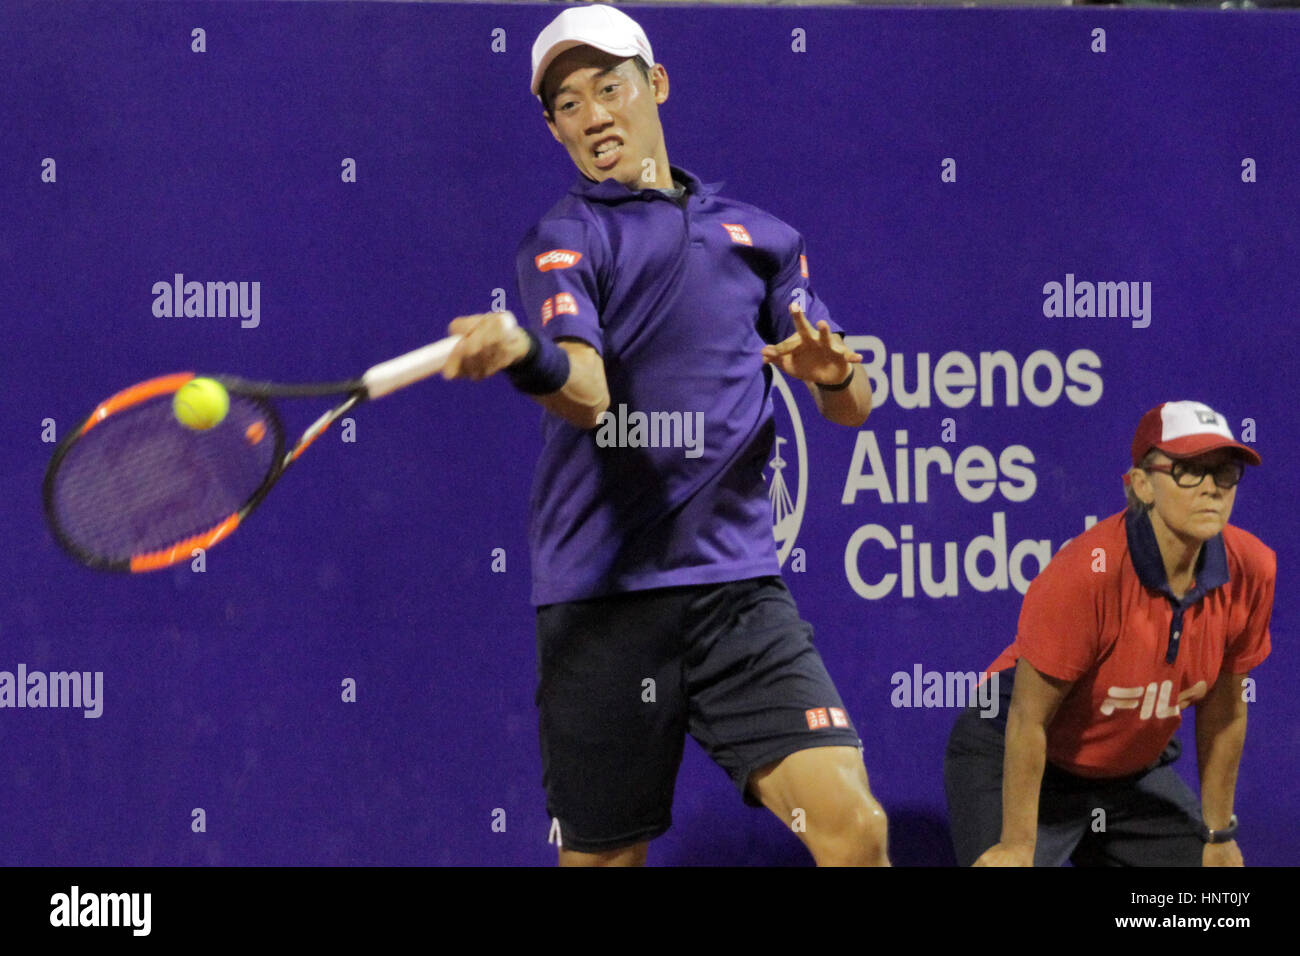 Buenos Aires, Argentina. 15th February 2017. Japanese player Key Nishikori during the game for main draw of Buenos - Stock Image